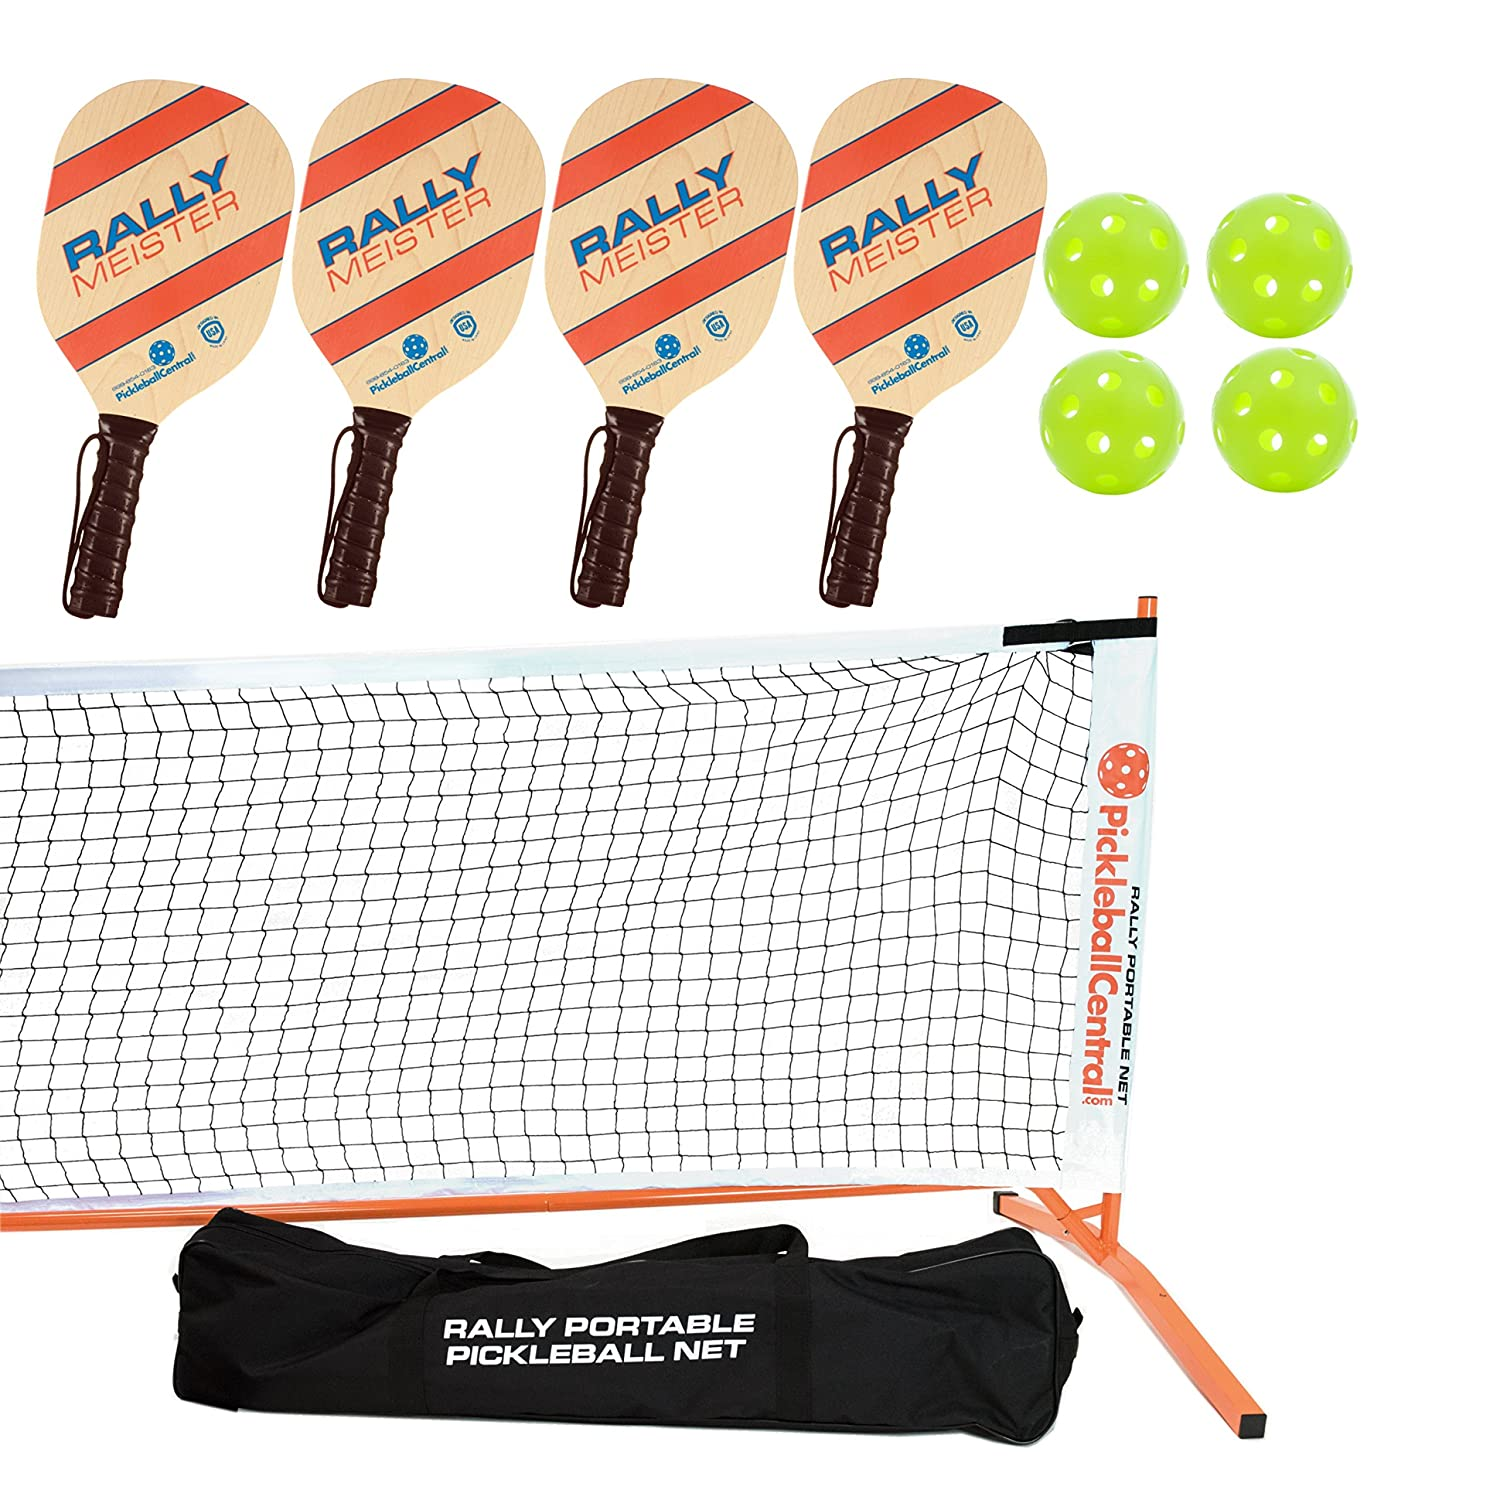 Rally Meister Pickleball Net、パドルとボールセット(Includesメタルフレーム+ Net + 4 Paddles + 4 Balls +ルールシートin Carryバッグ) B07CZ5NG5D オレンジ